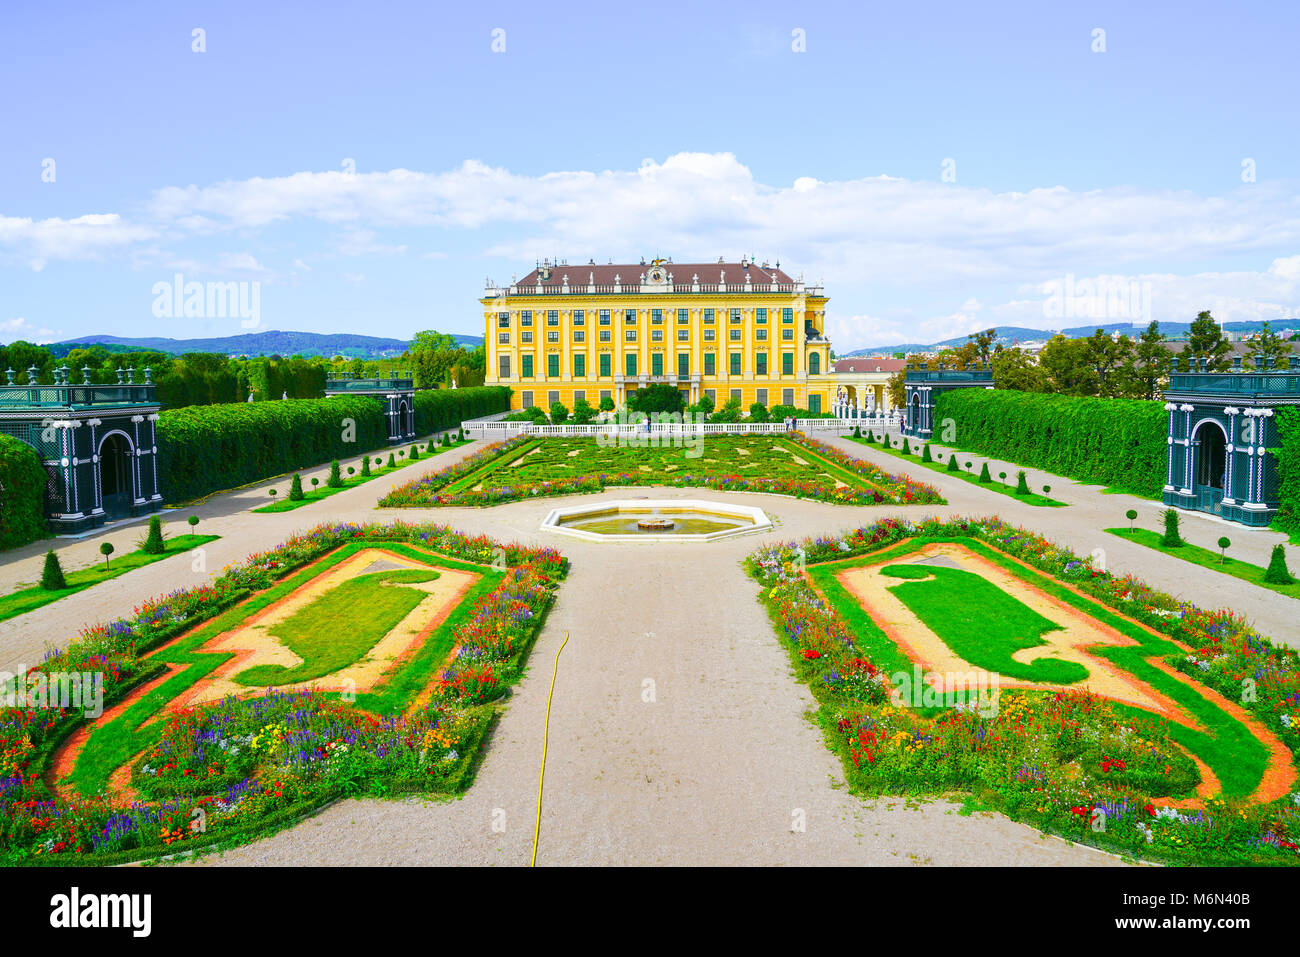 VIENNA,AUSTRIA - SEPTEMBER 4 2017; Formal gardens and paths to Baroque architectural detail of the Schonbrunn imperial - Stock Image